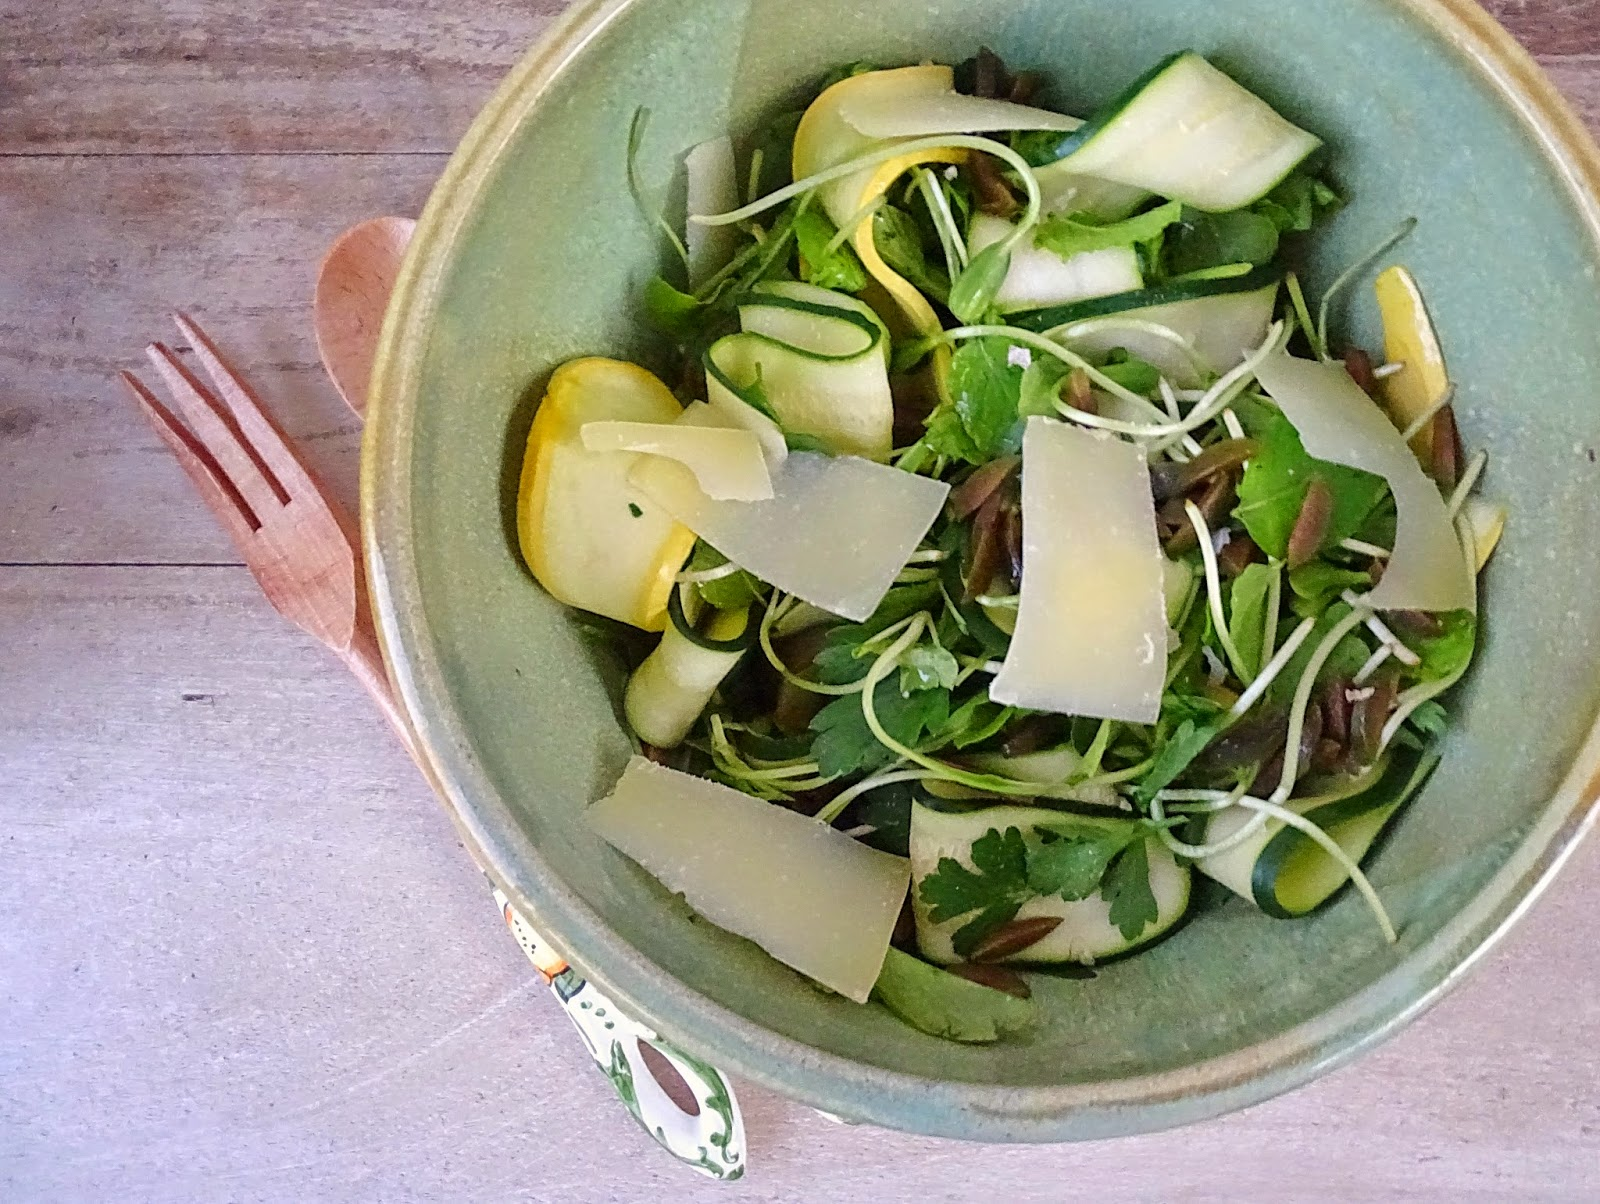 ... : Listing to Normal What's cooking? Herbed Salad with Squash Ribbons